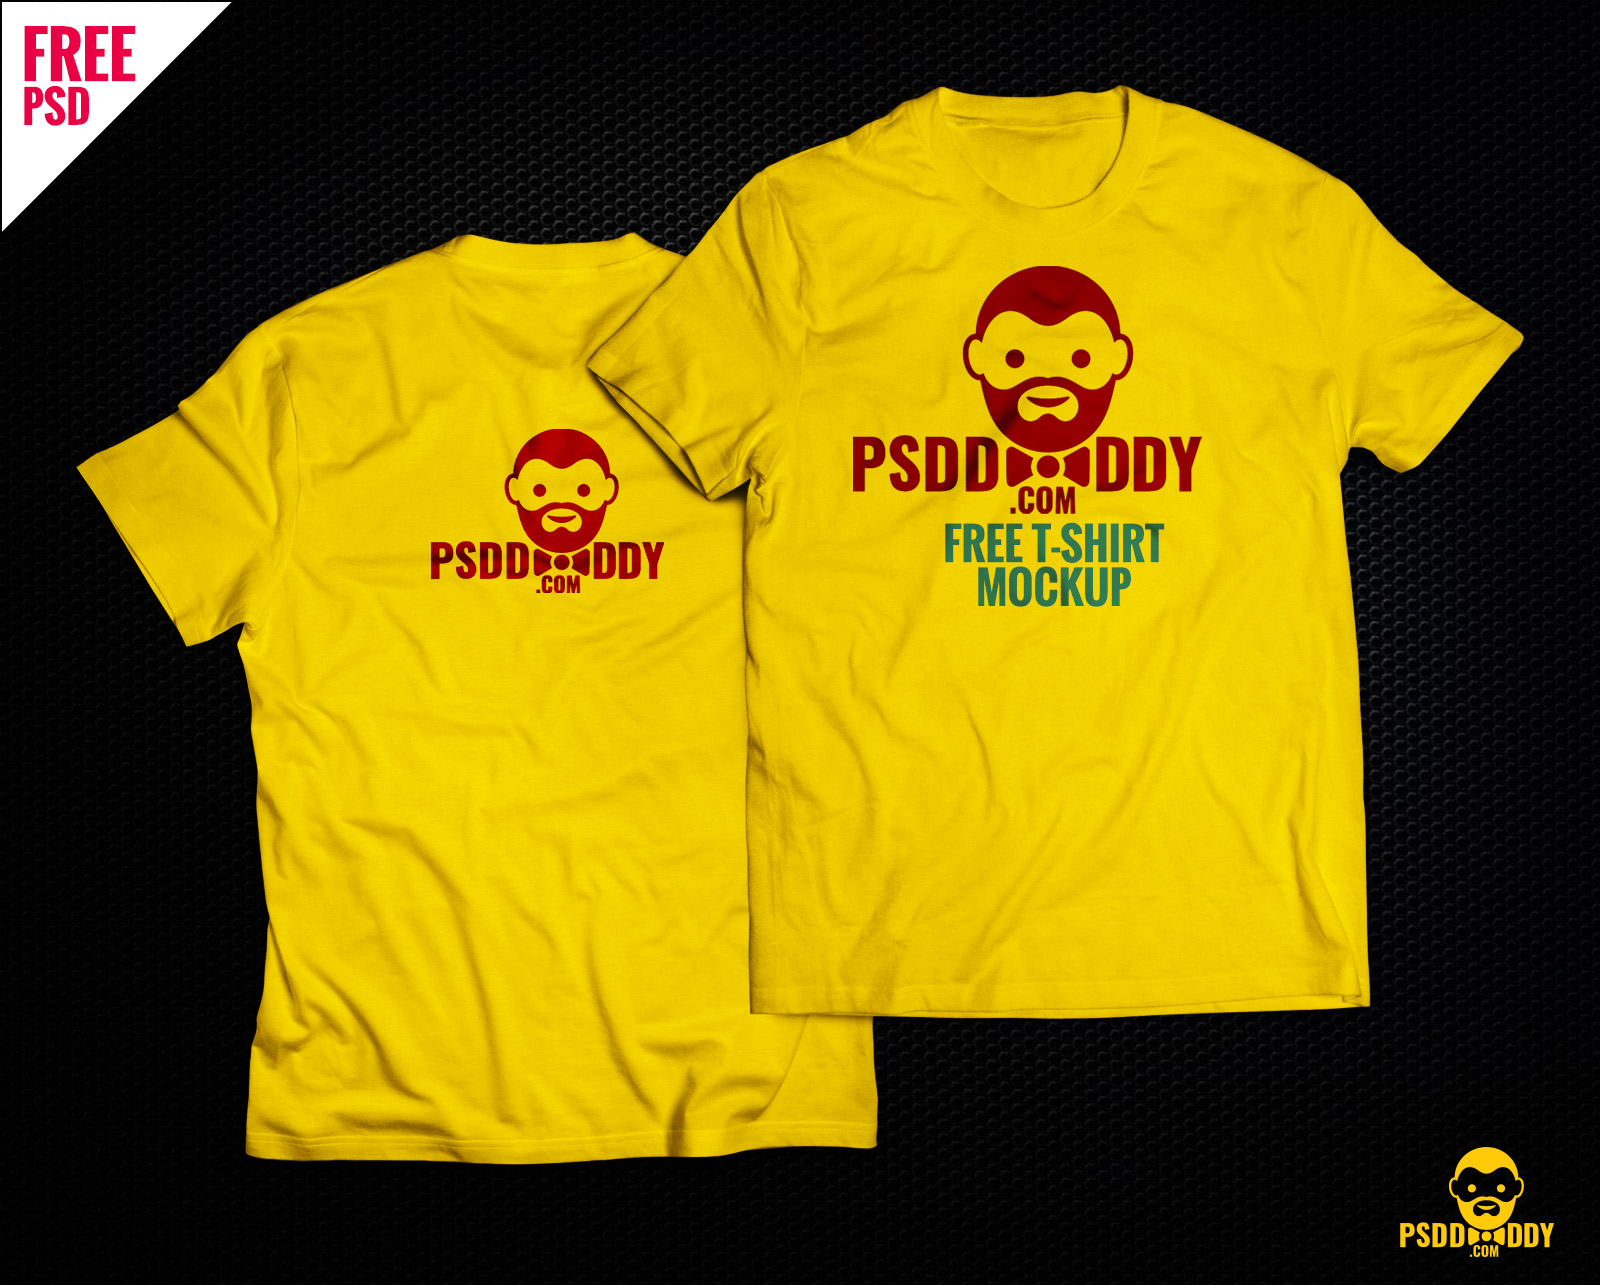 t shirt mock up free psd download - T Shirt Template Psd Free Download